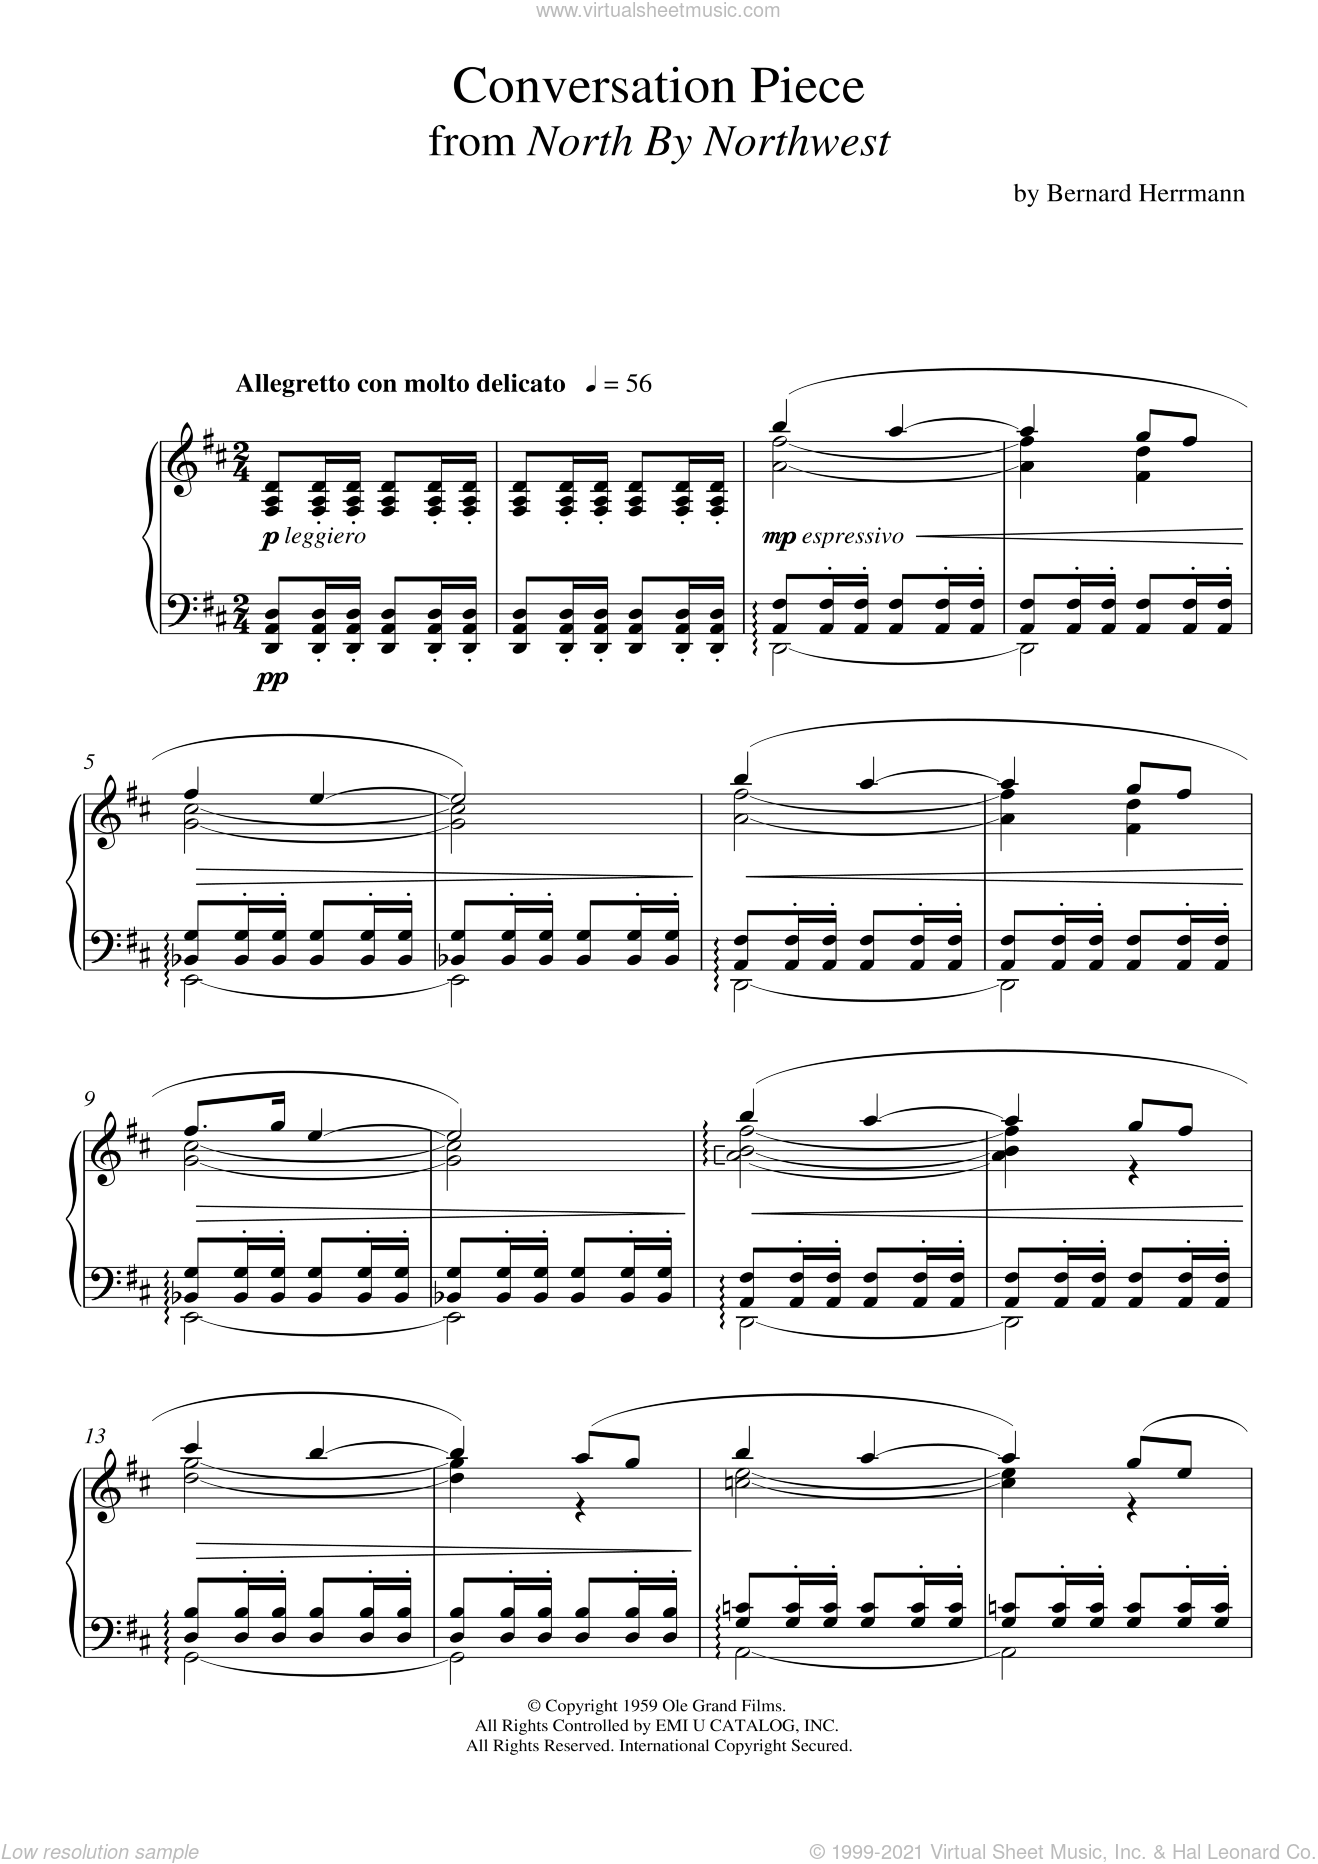 Conversation Piece From North By Northwest sheet music for piano solo by Bernard Herrmann, intermediate skill level